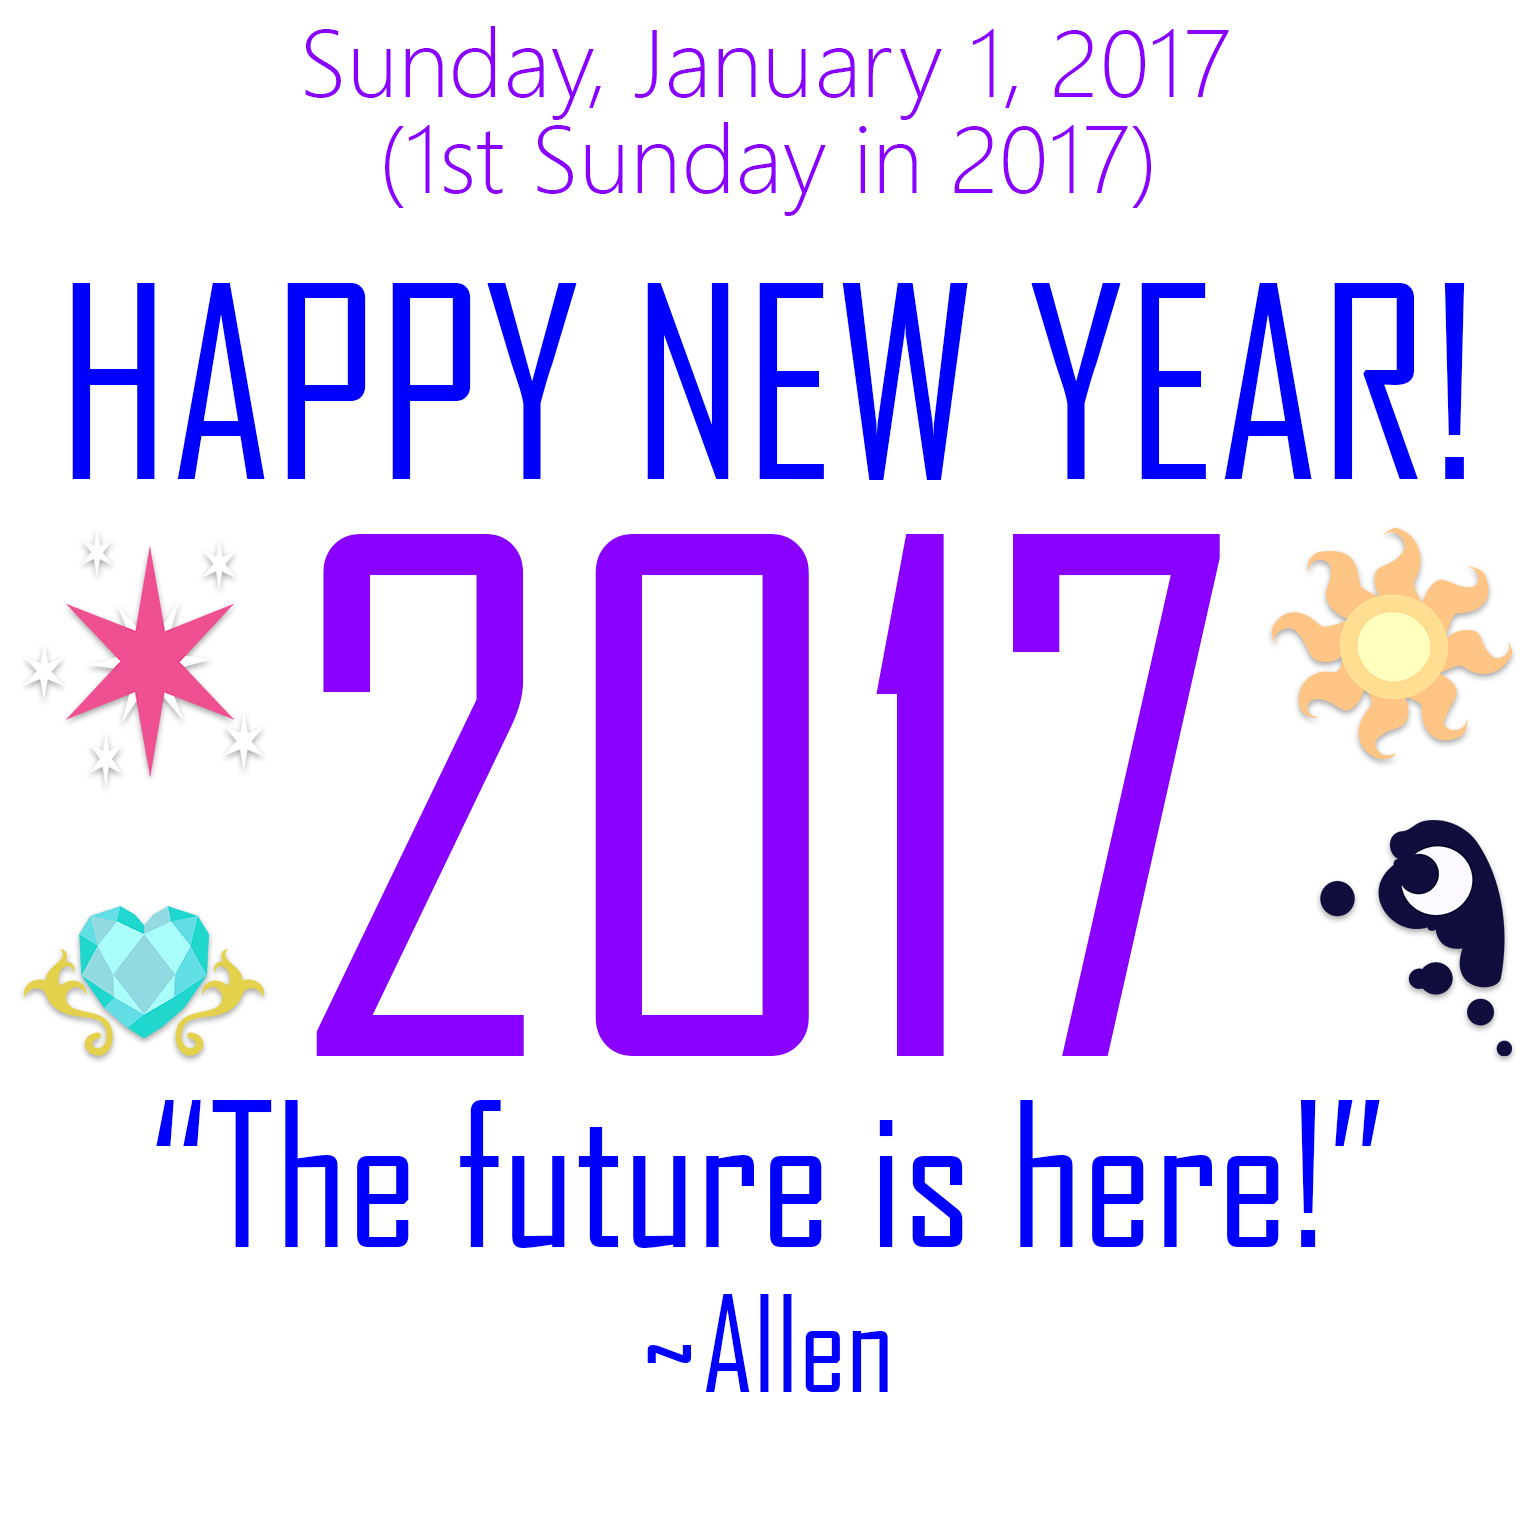 happy_new_year_2017_by_allenacnguyen-datv4k1.jpg